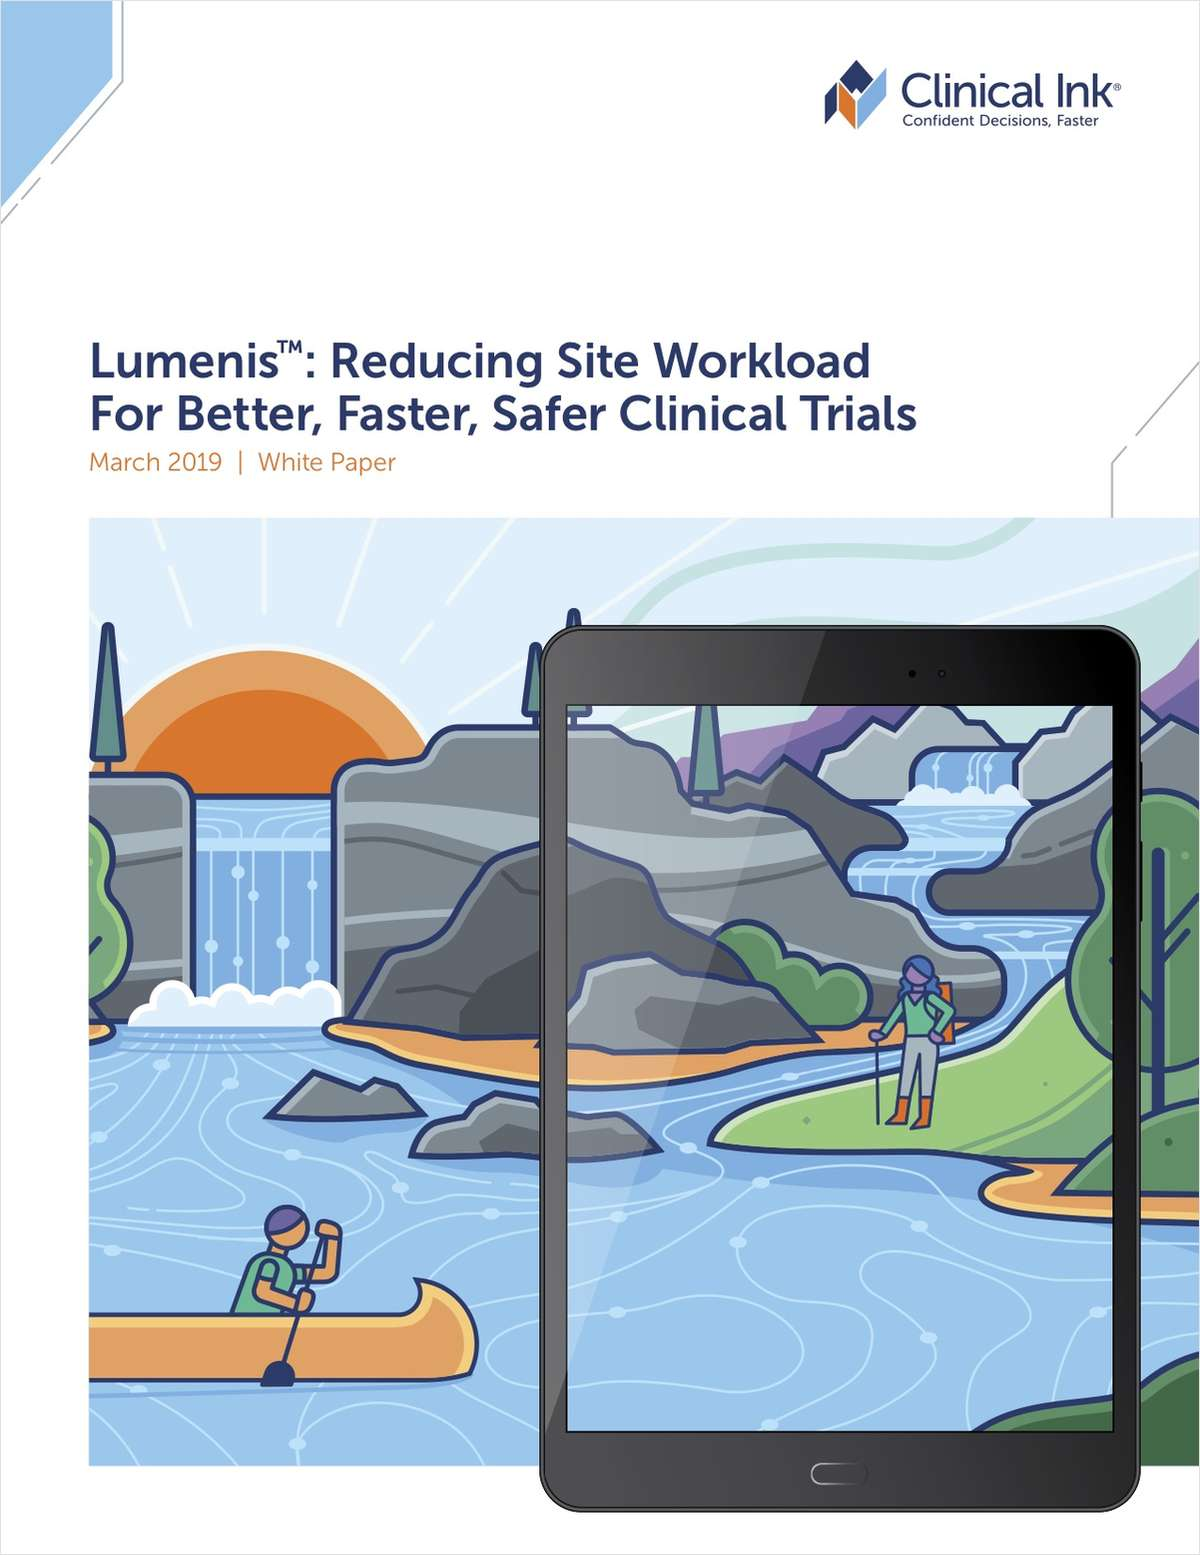 Reducing Site Workload for Better, Faster, Safer Clinical Trials